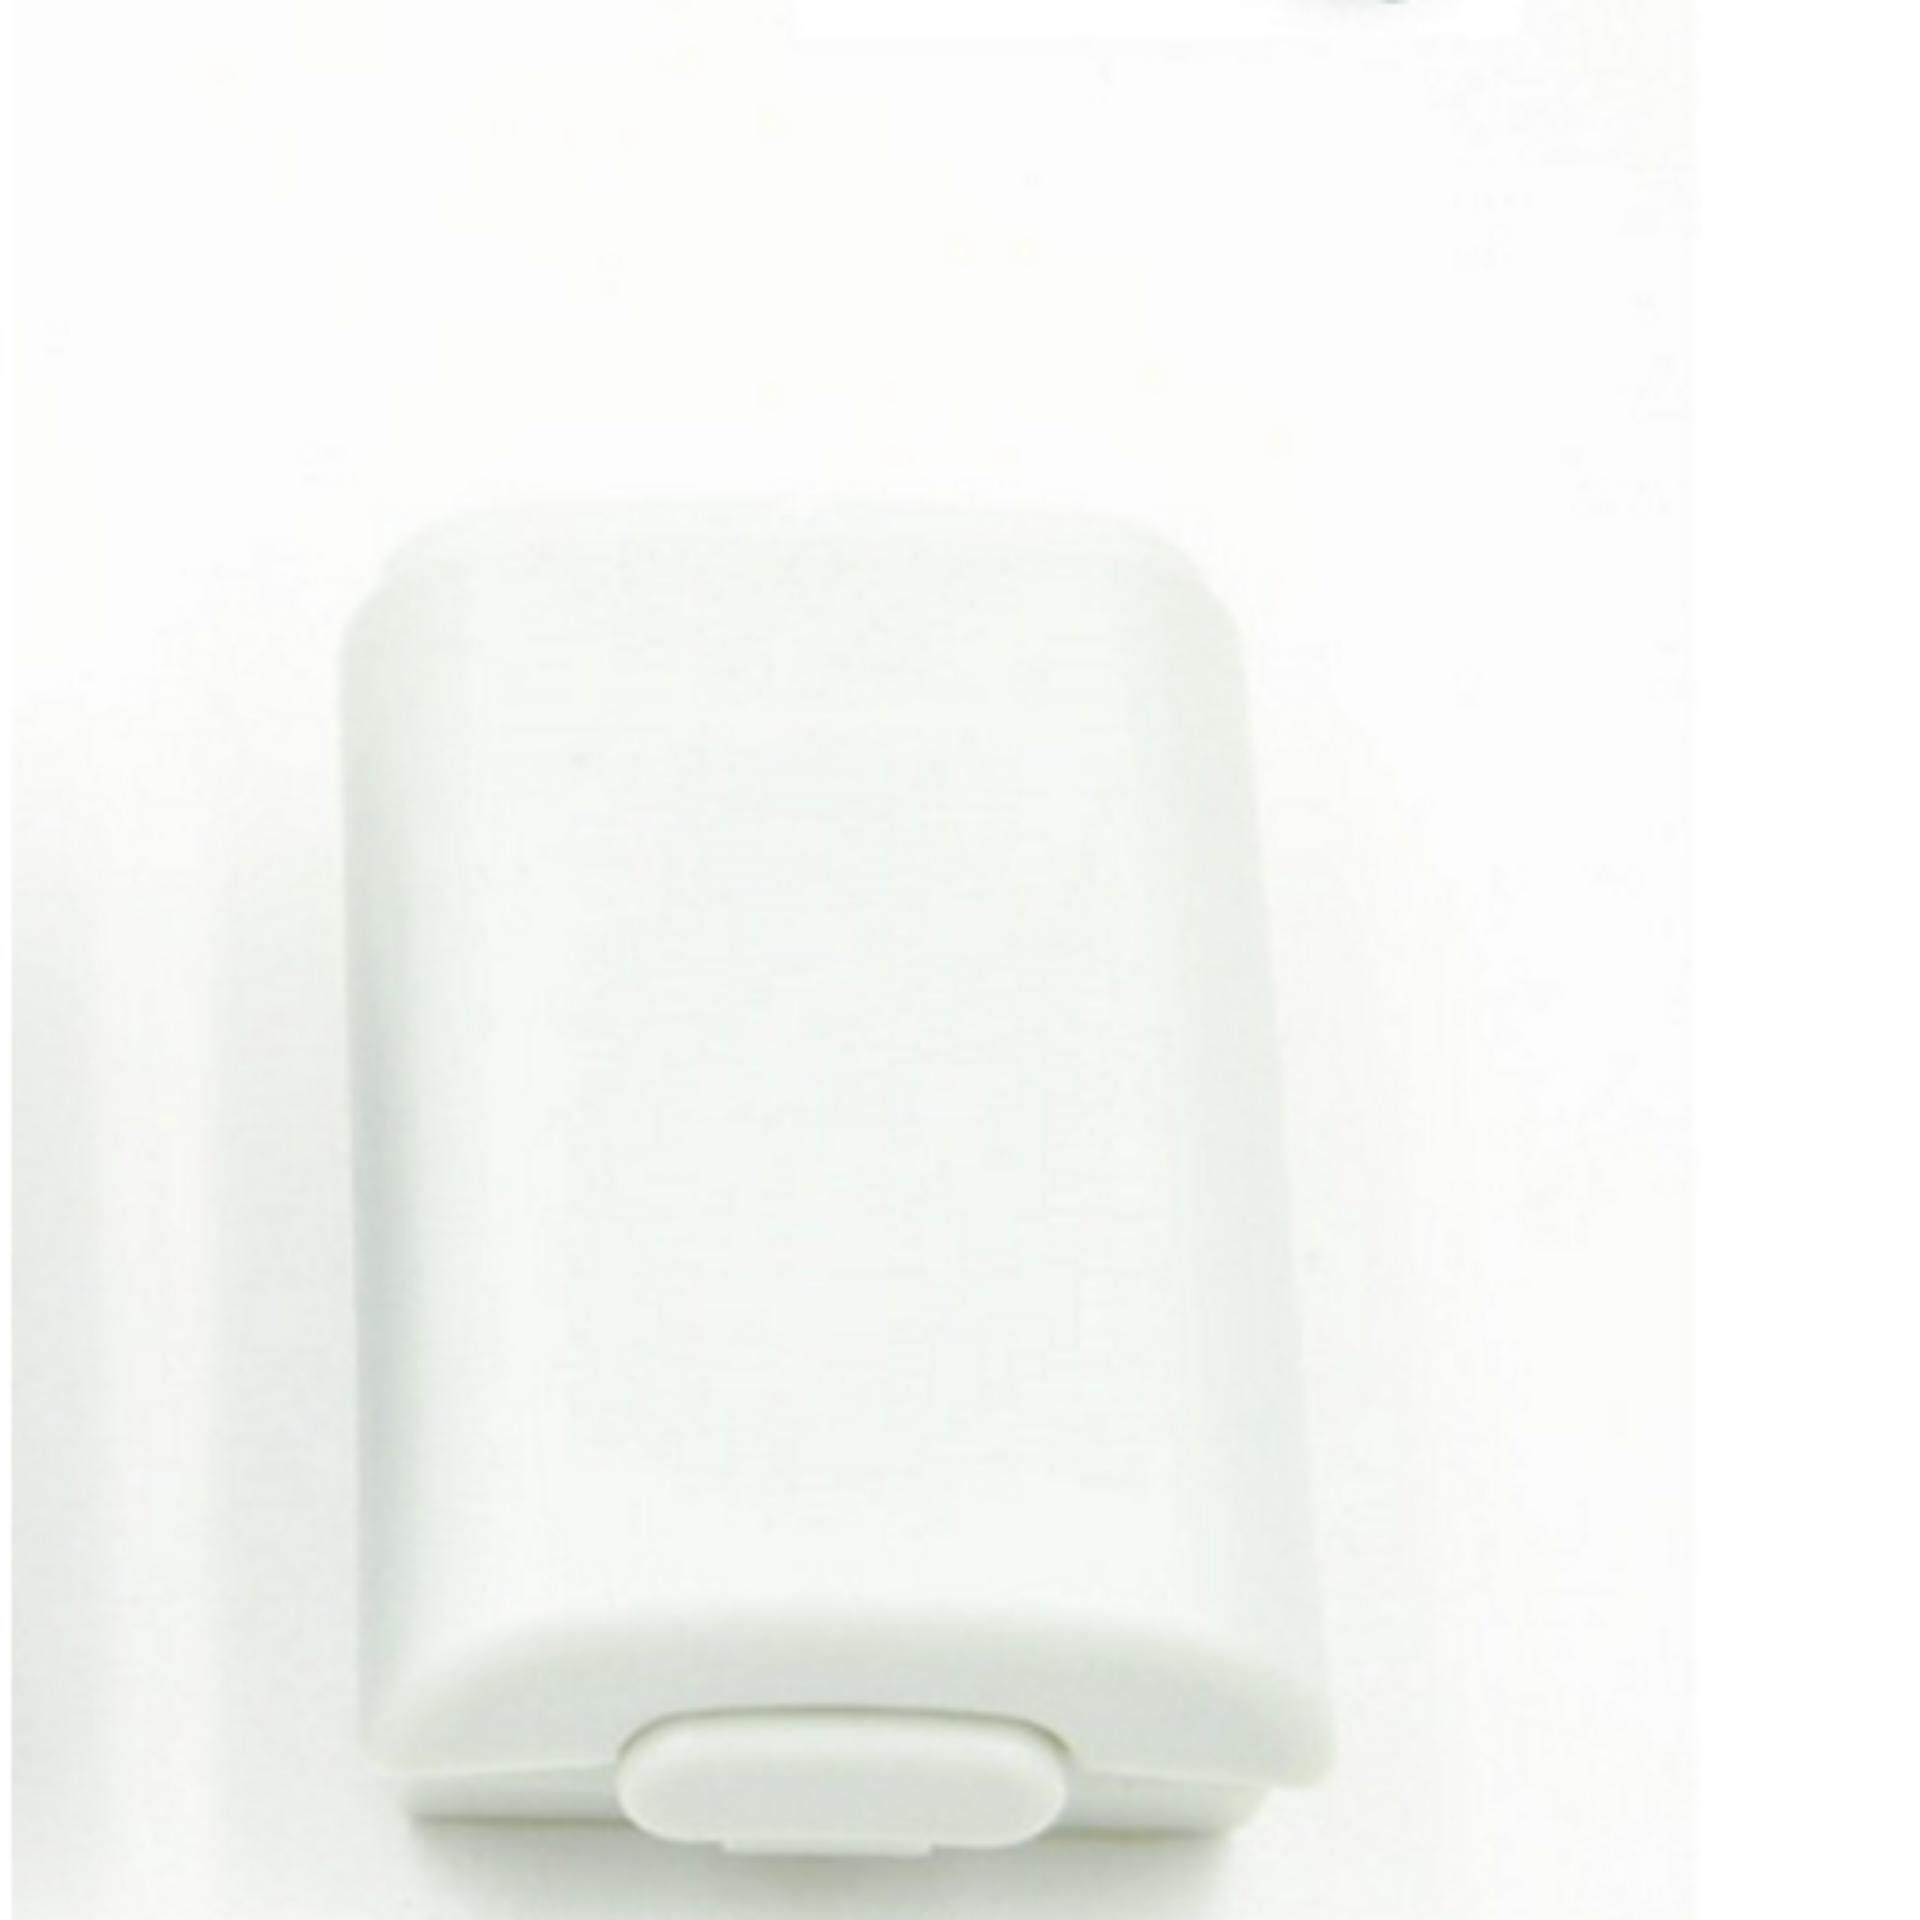 Battery Pack Cover Shell Case for Xbox 360 Wireless Controller White